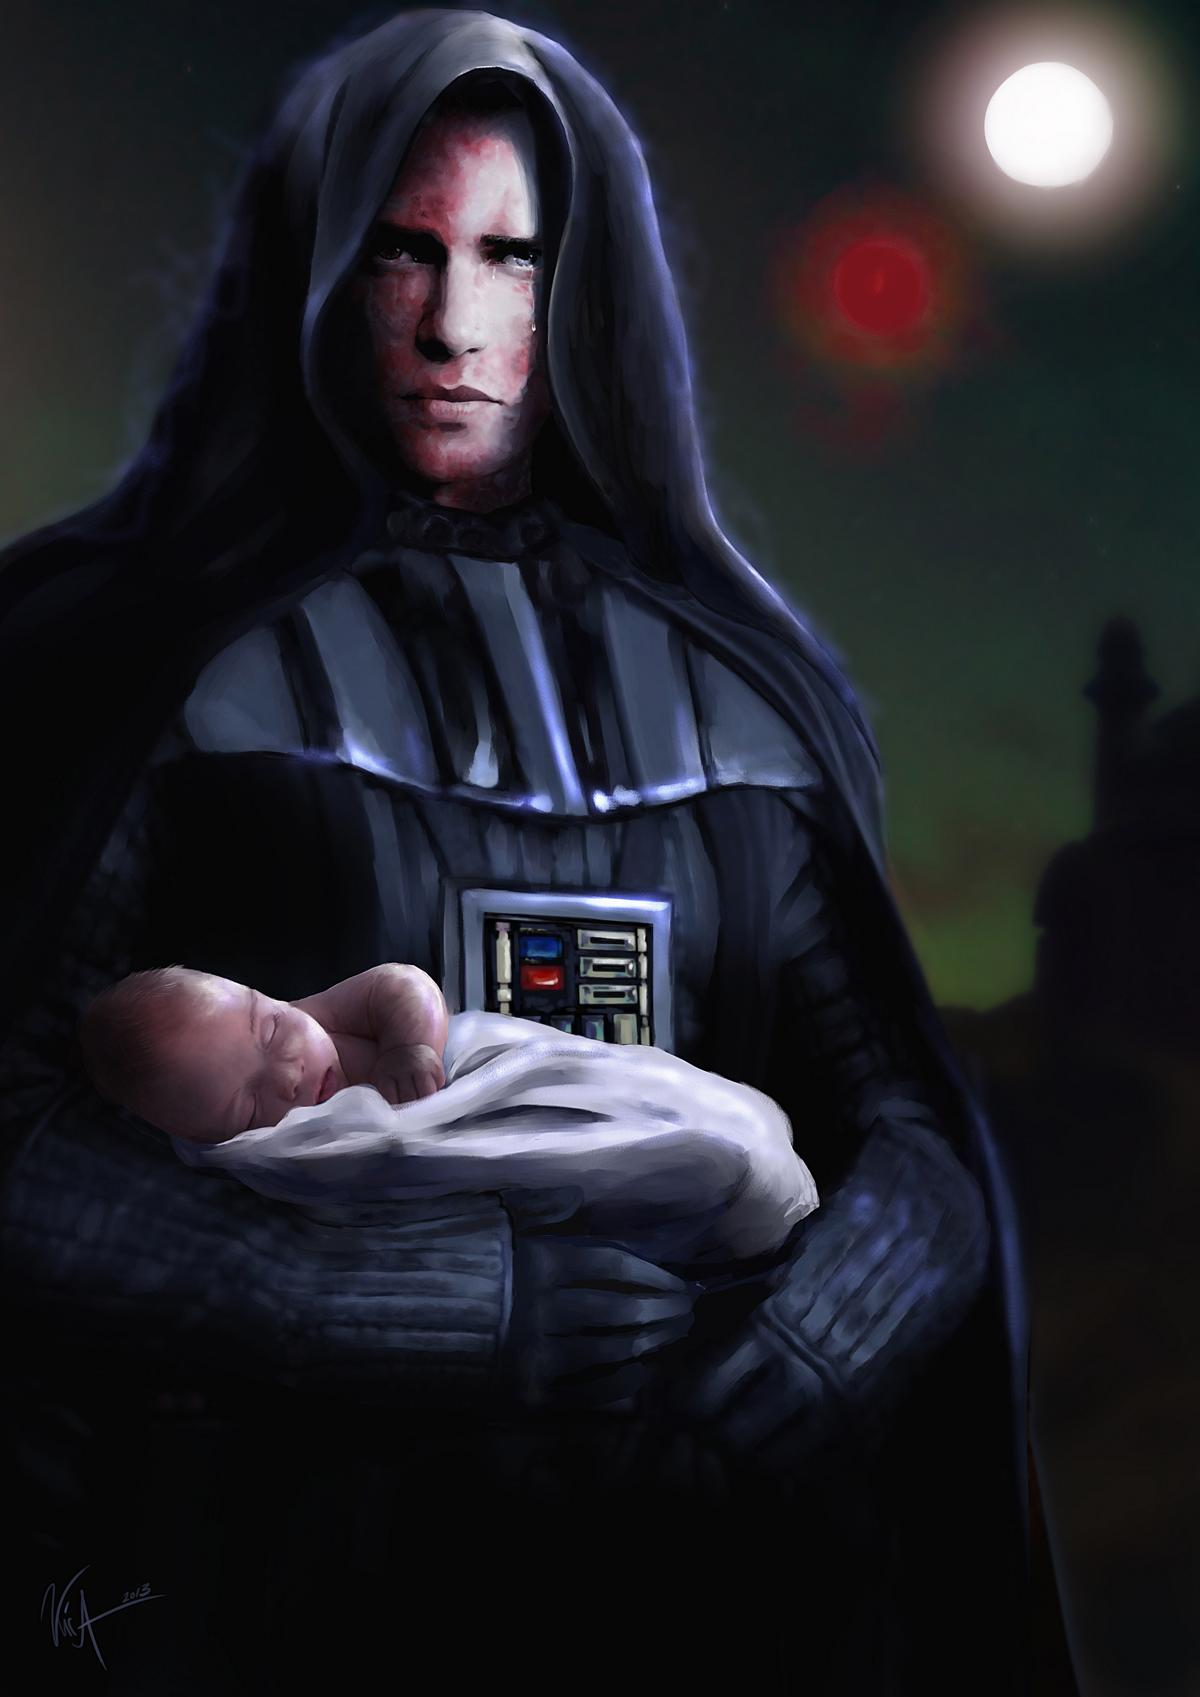 Anakin Skywalker / Darth Vader by Lady-Kira-Night